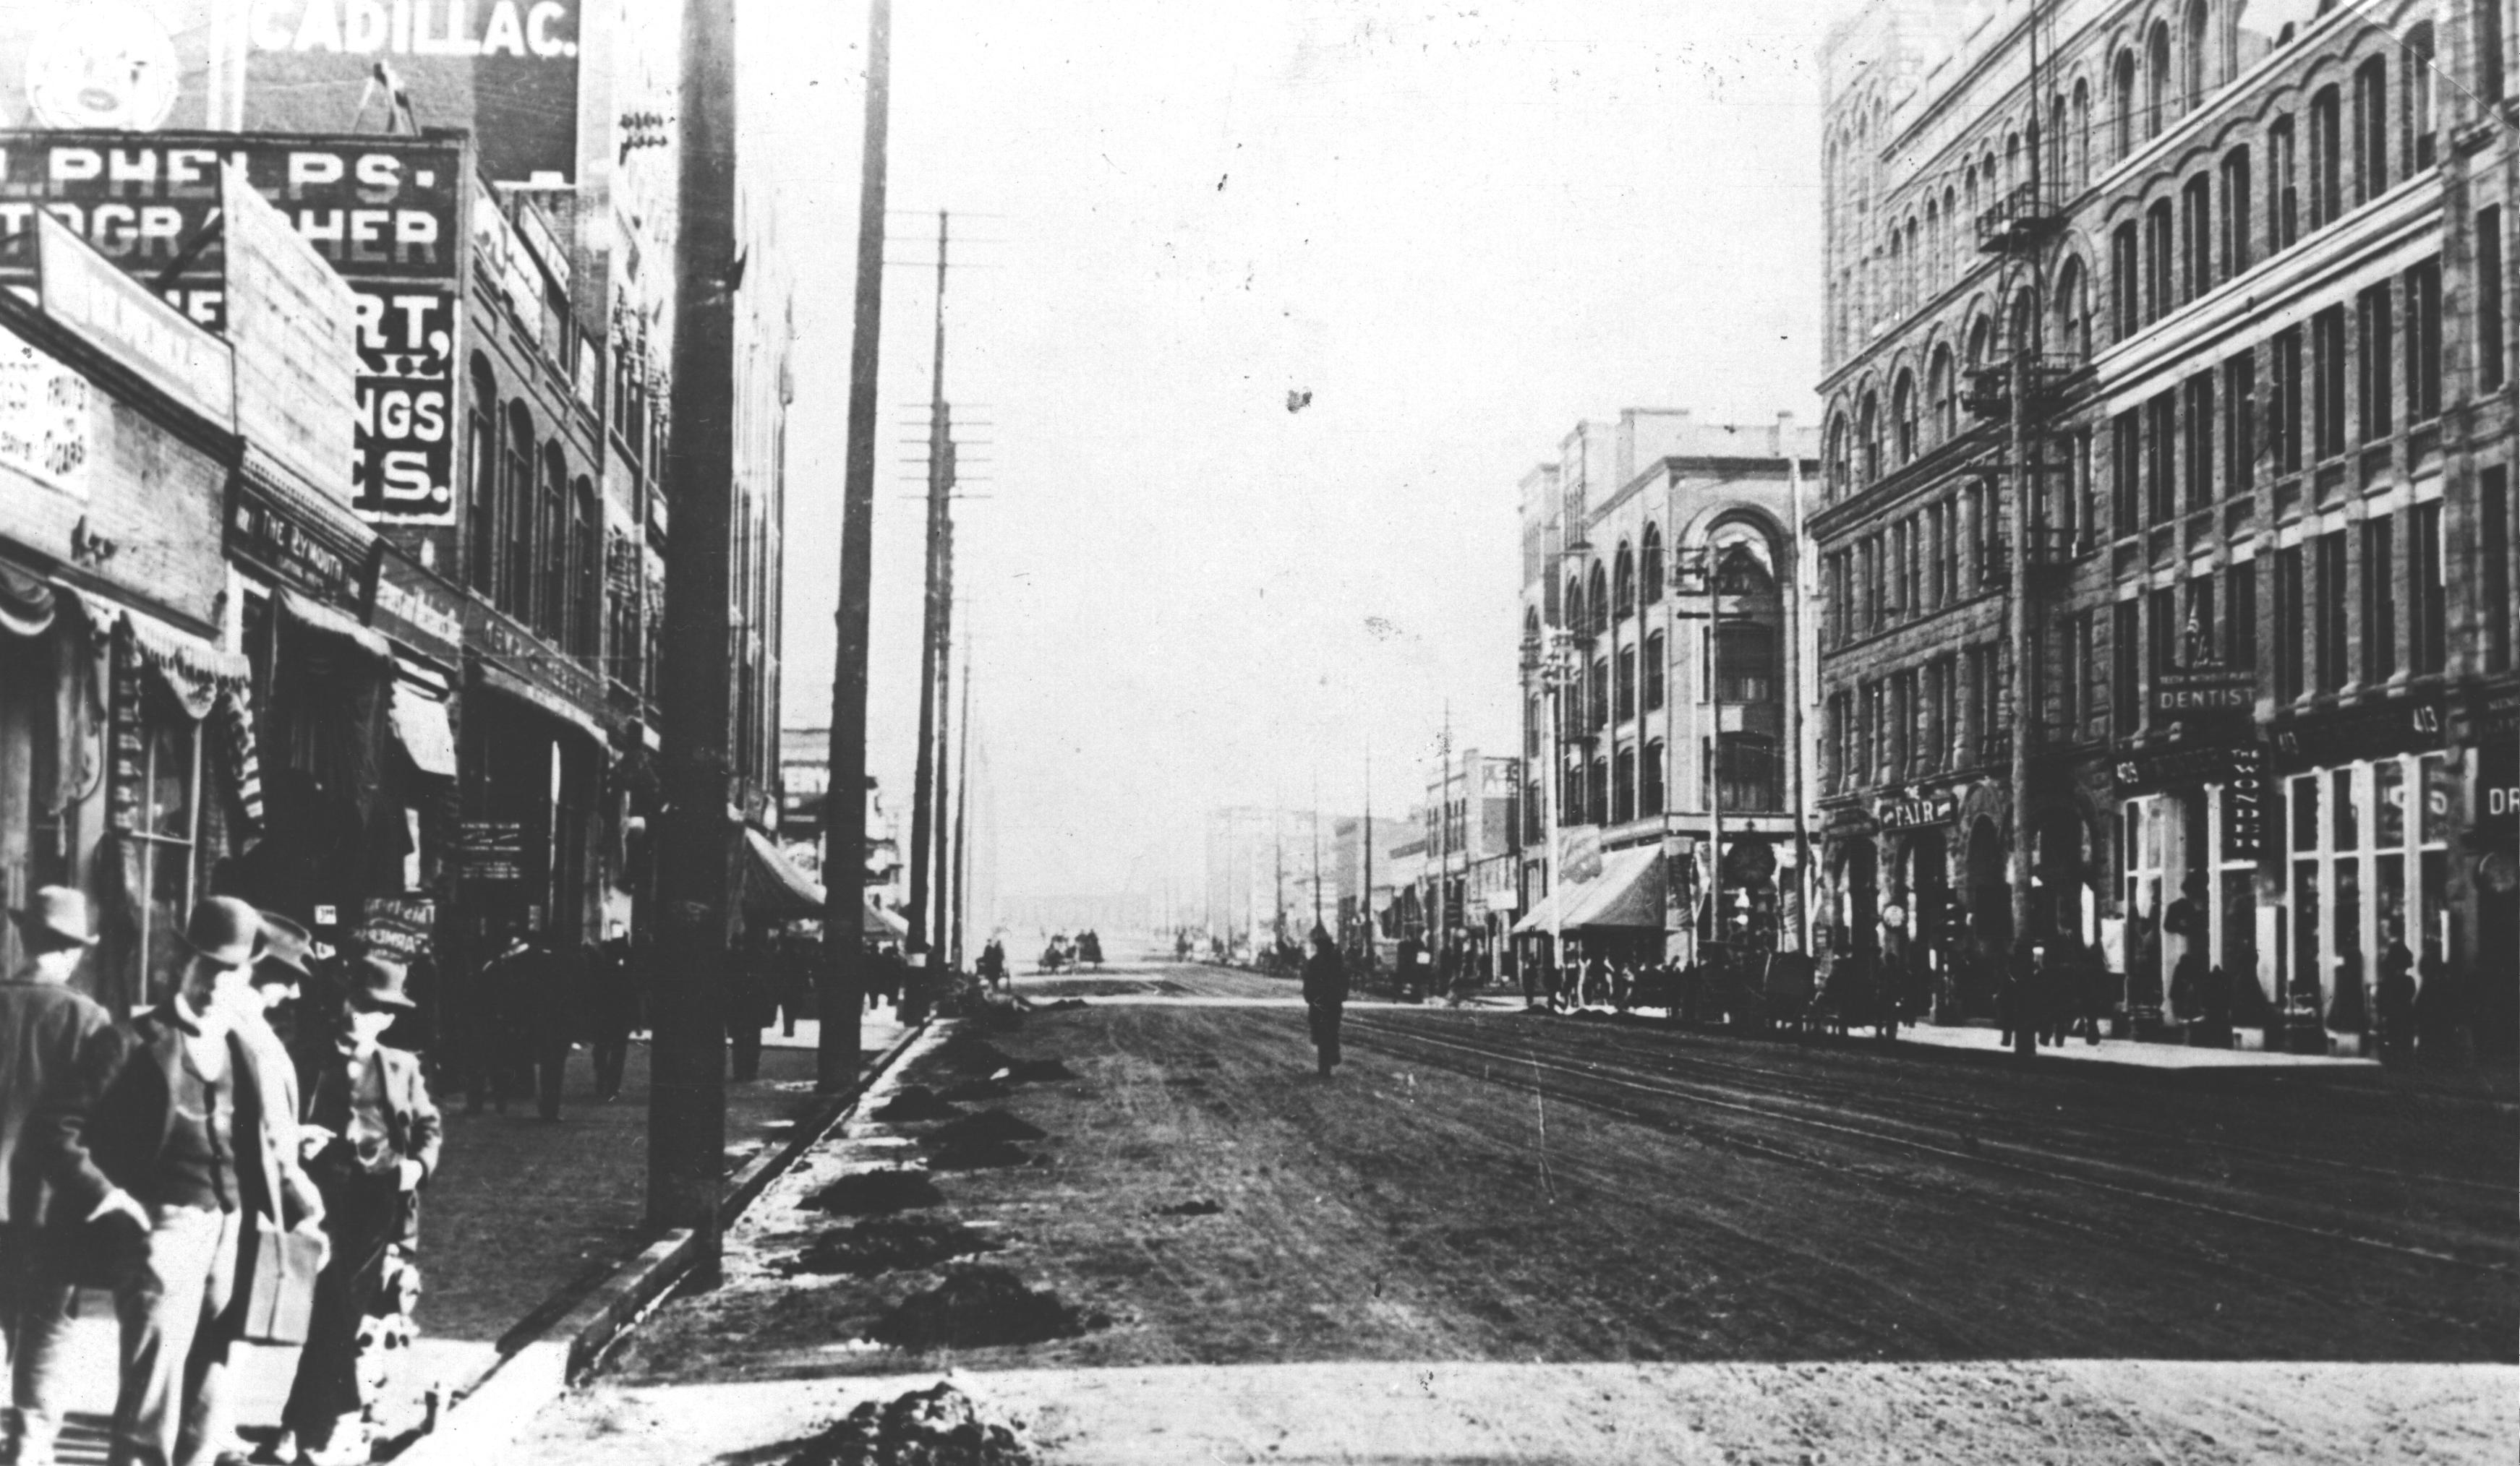 Historic Downtown, 1895-1900. A view down the center of the street with a few men in the lower left corner in historic clothes.